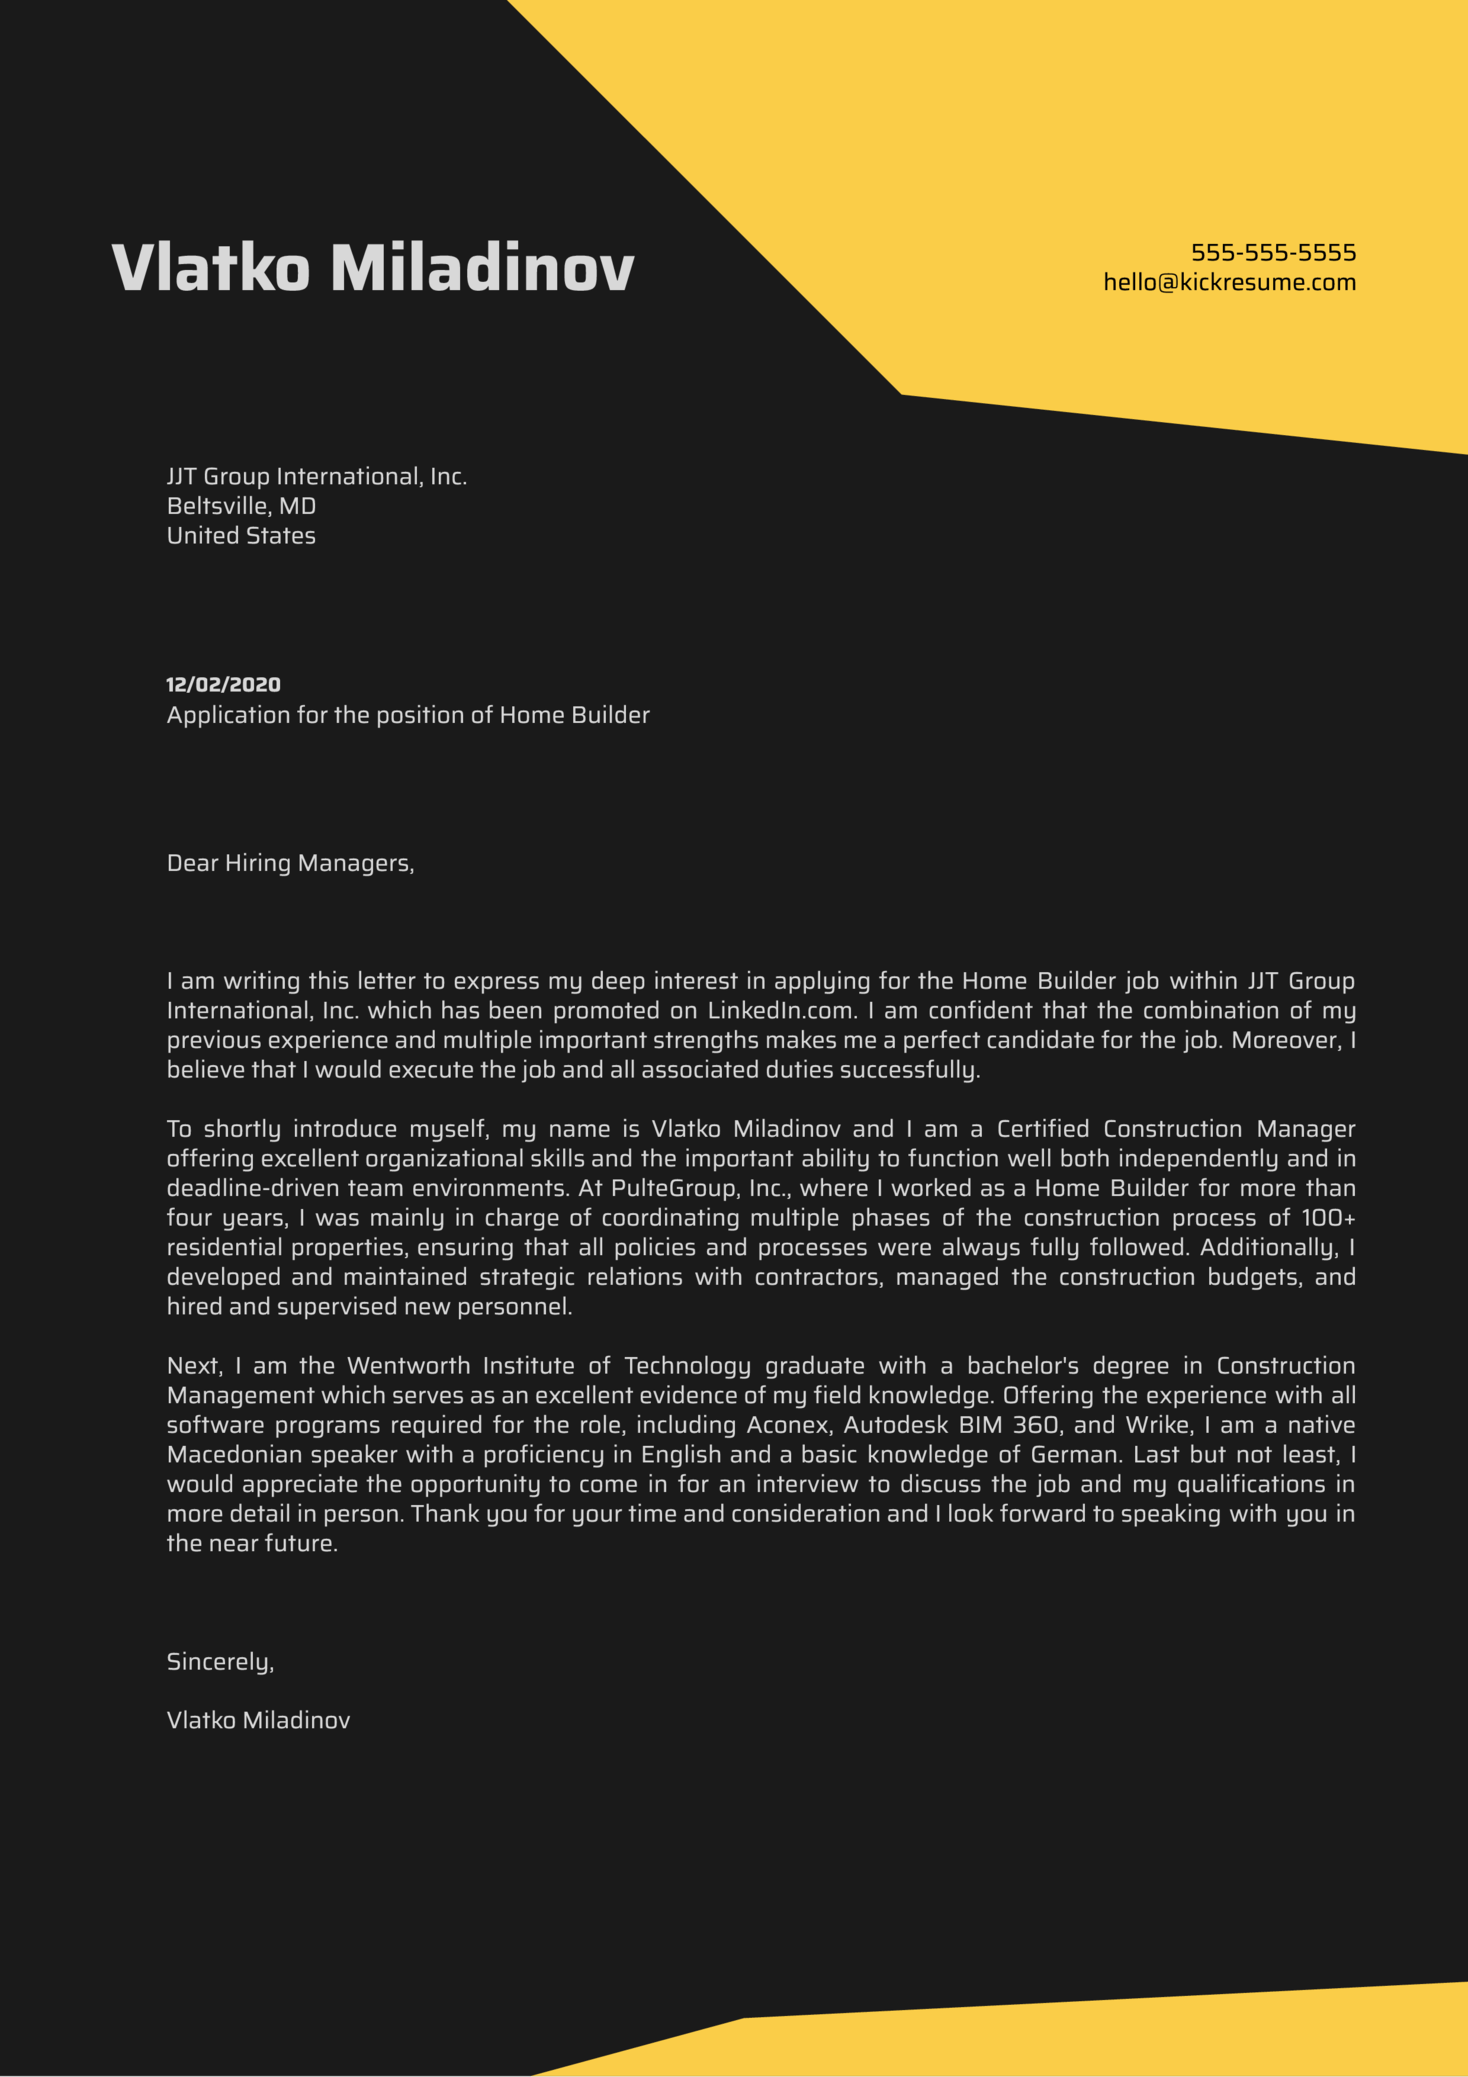 Home Builder Cover Letter Example